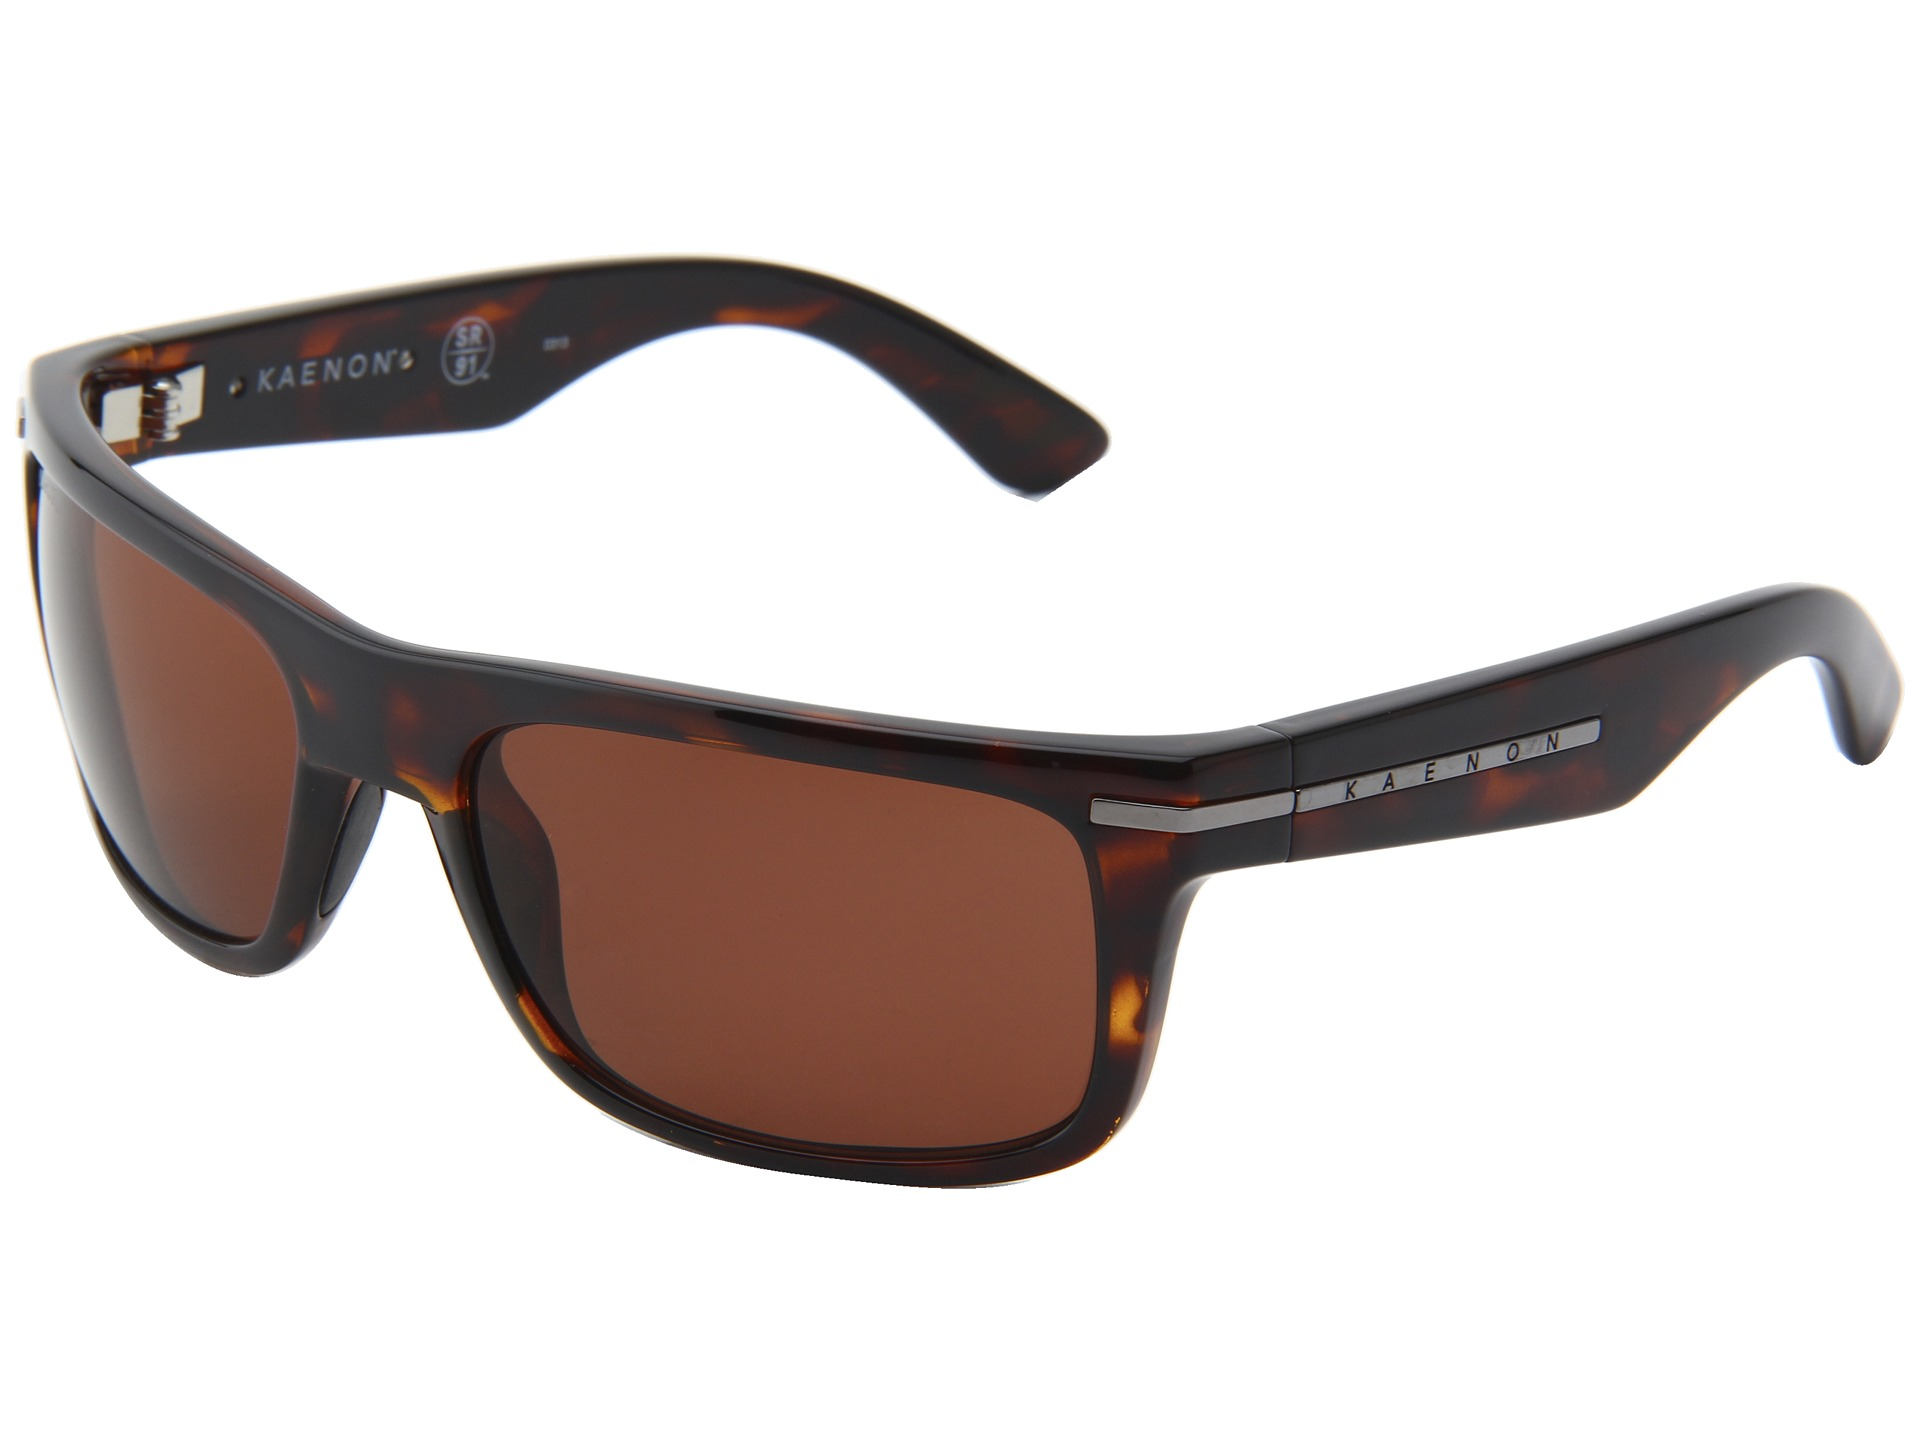 7bbf5c7317f Kaenon Rhino Polarized Sunglasses Review « Heritage Malta